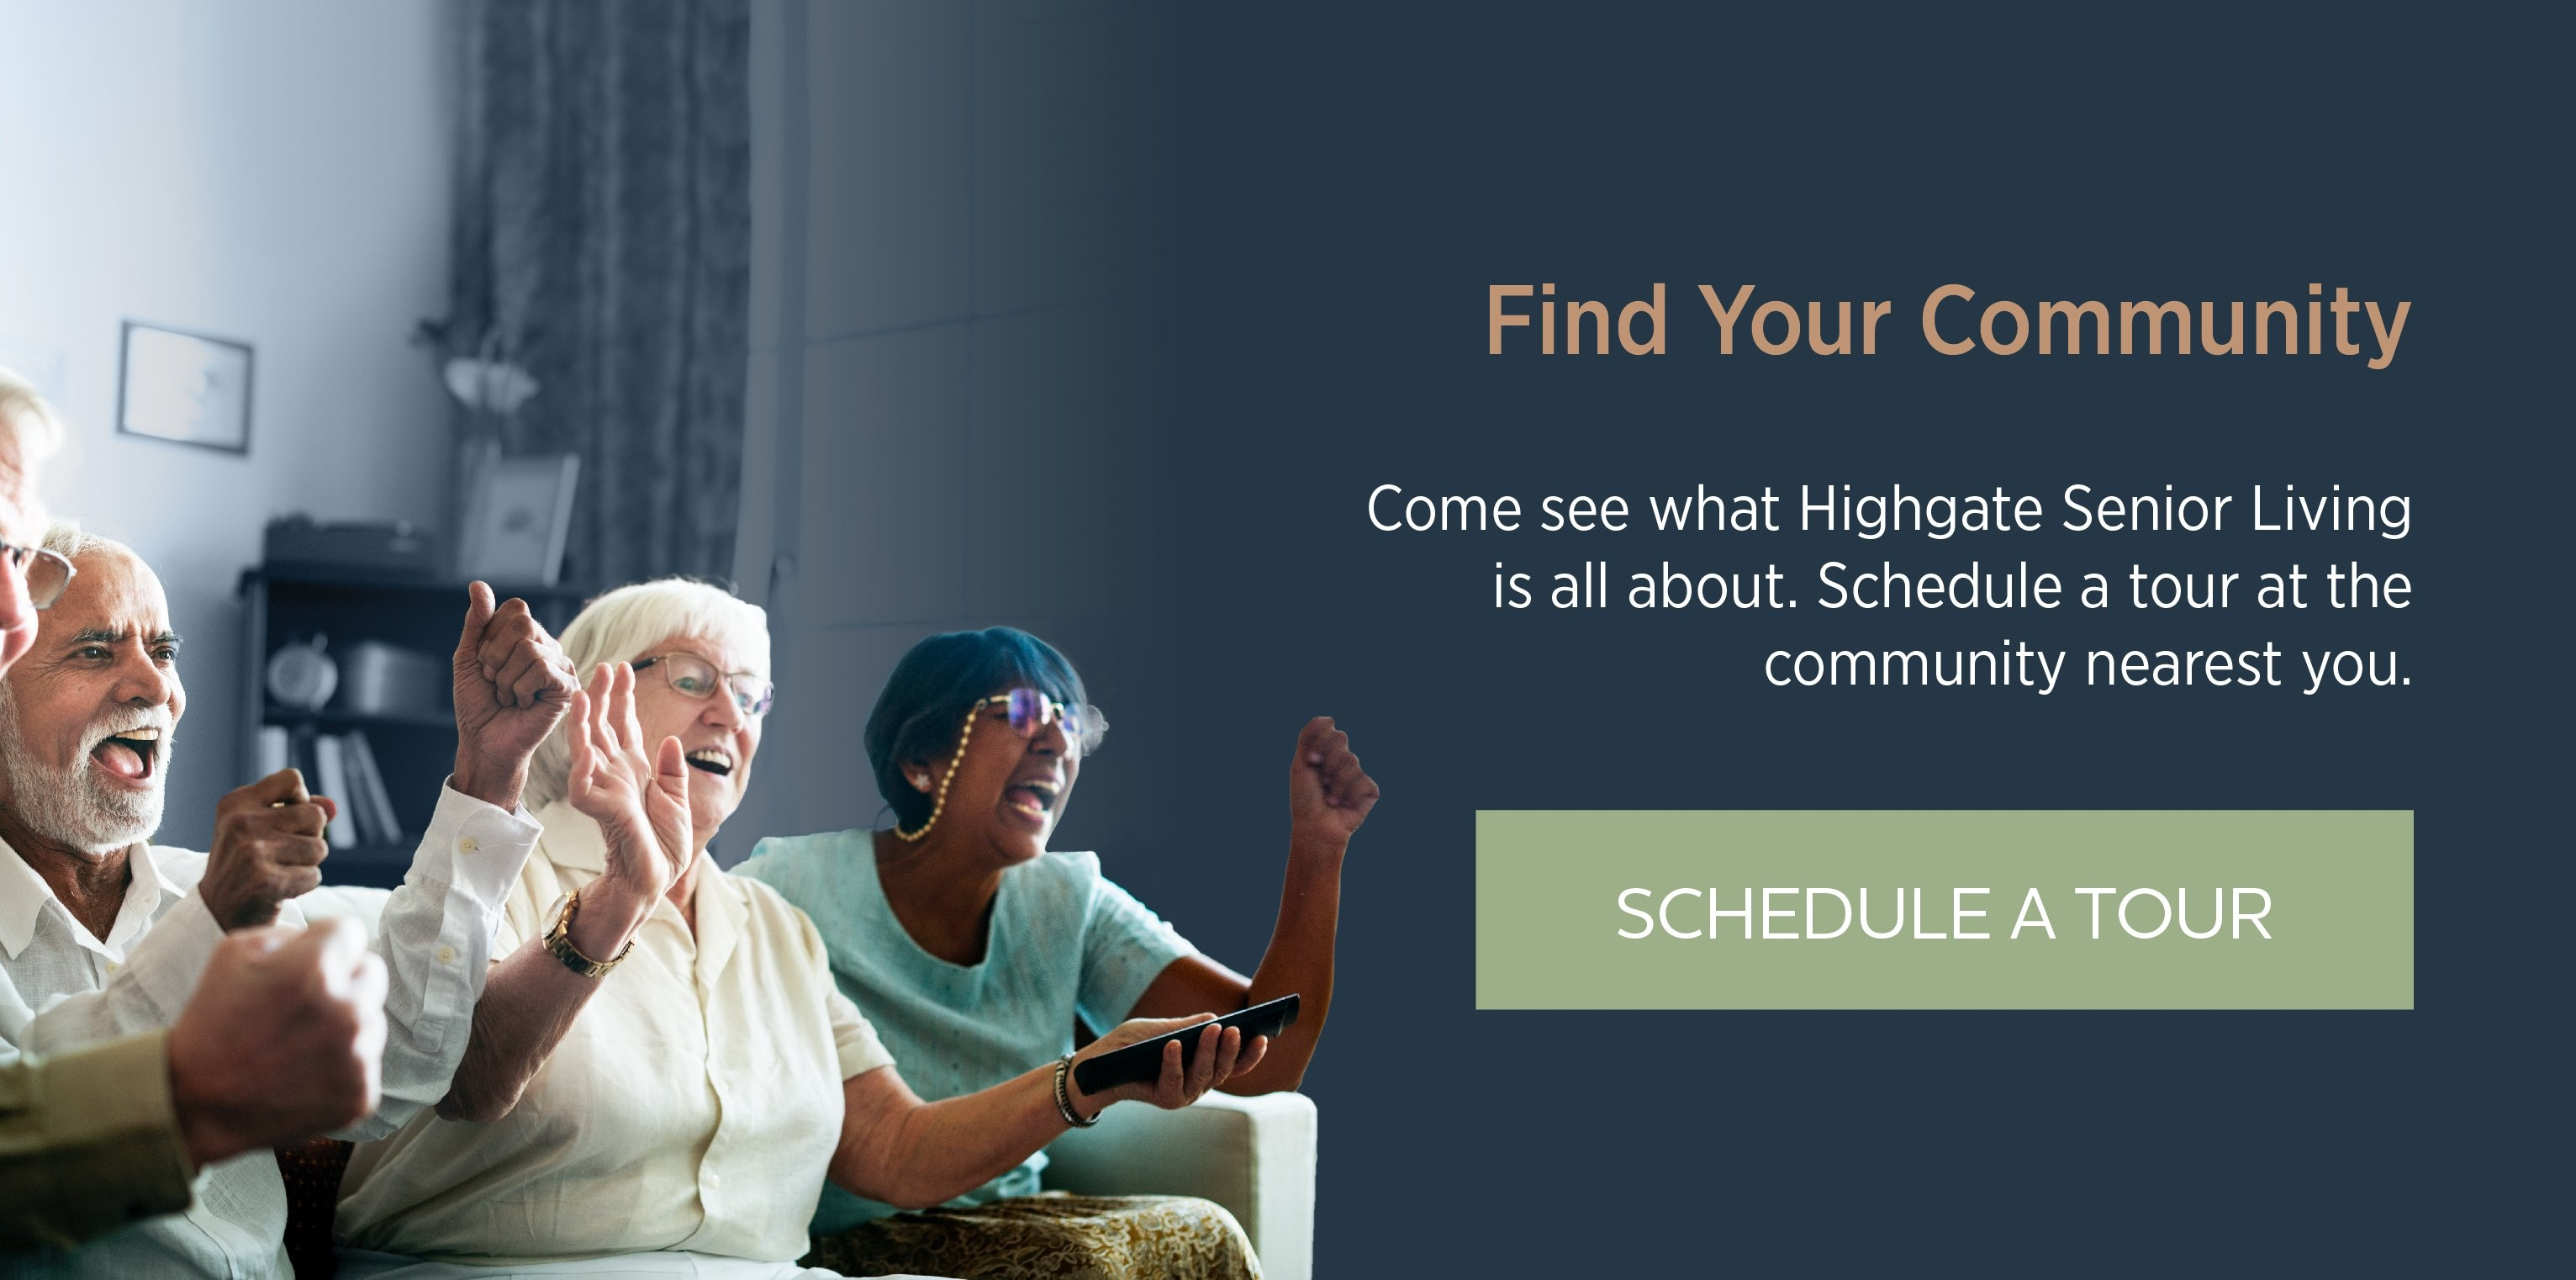 Find Your Community. Come see what Highgate Senior Living is all about. Schedule a tour at the community nearest you. Schedule a Tour.